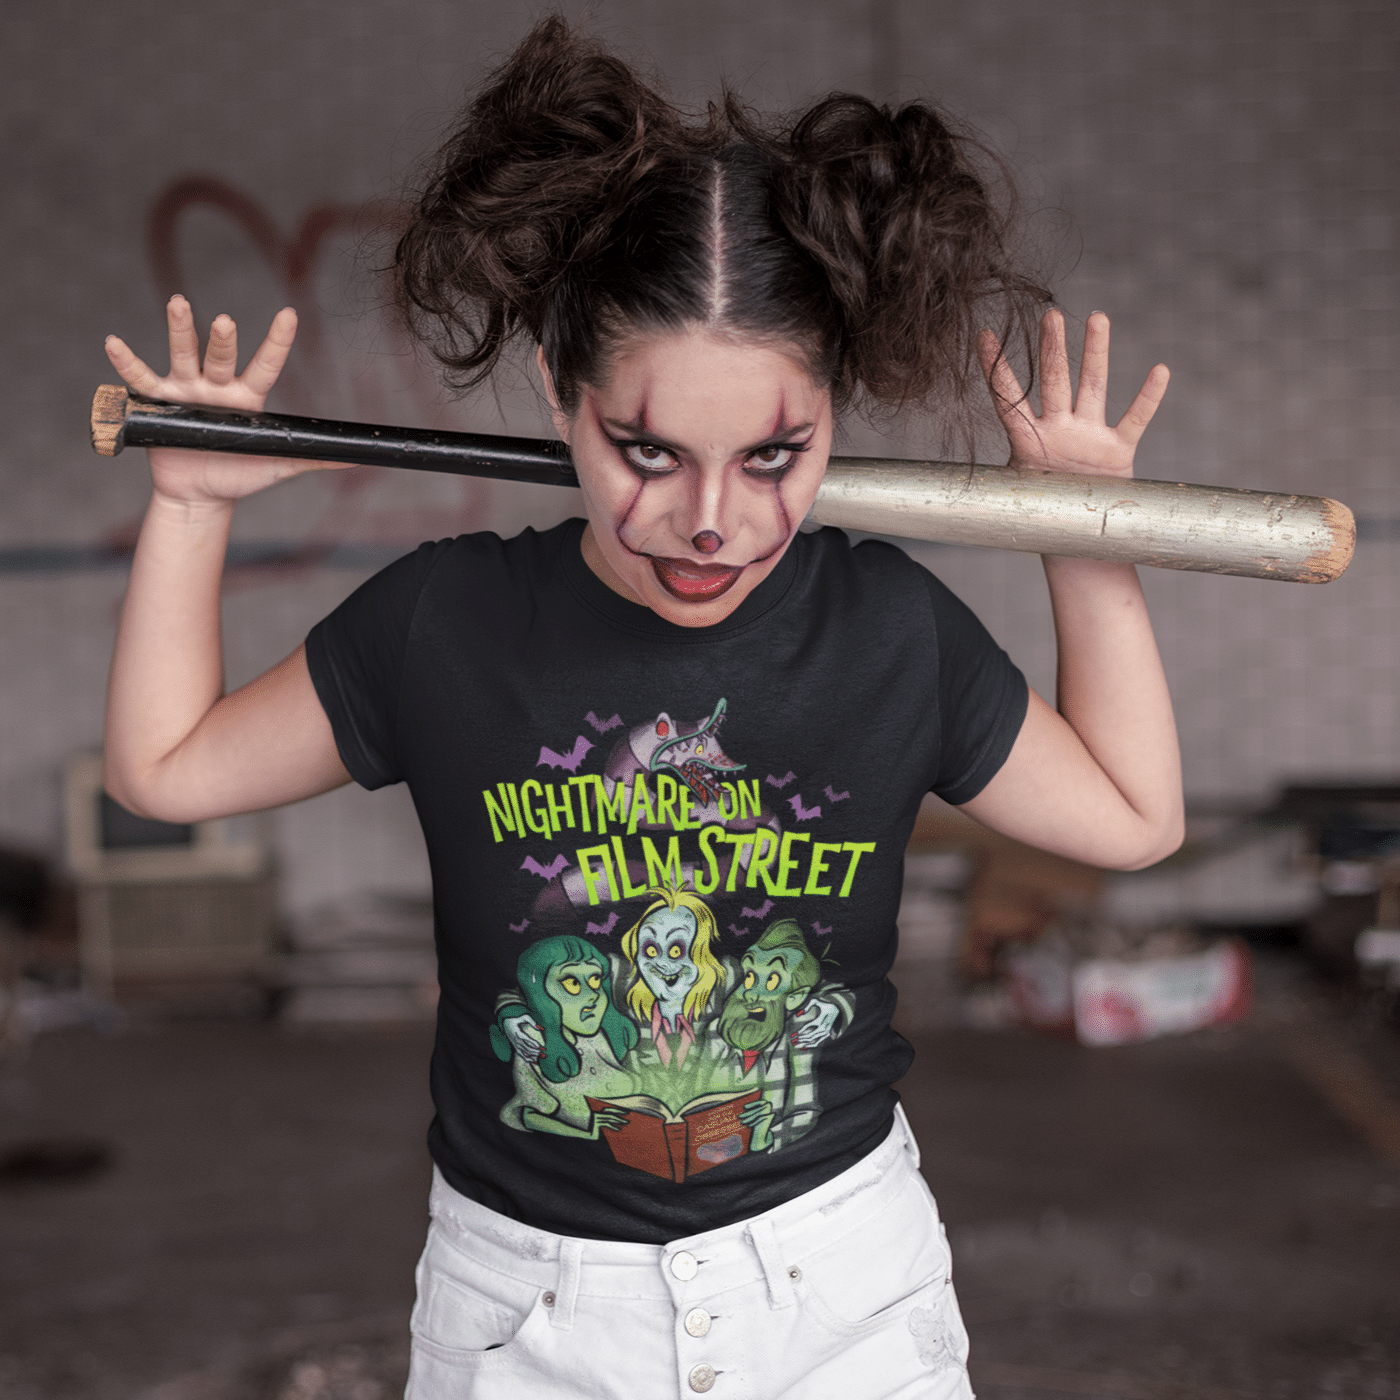 t-shirt-mockup-of-a-woman-with-halloween-makeup-and-a-baseball-bat-on-her-back-22921_1.png